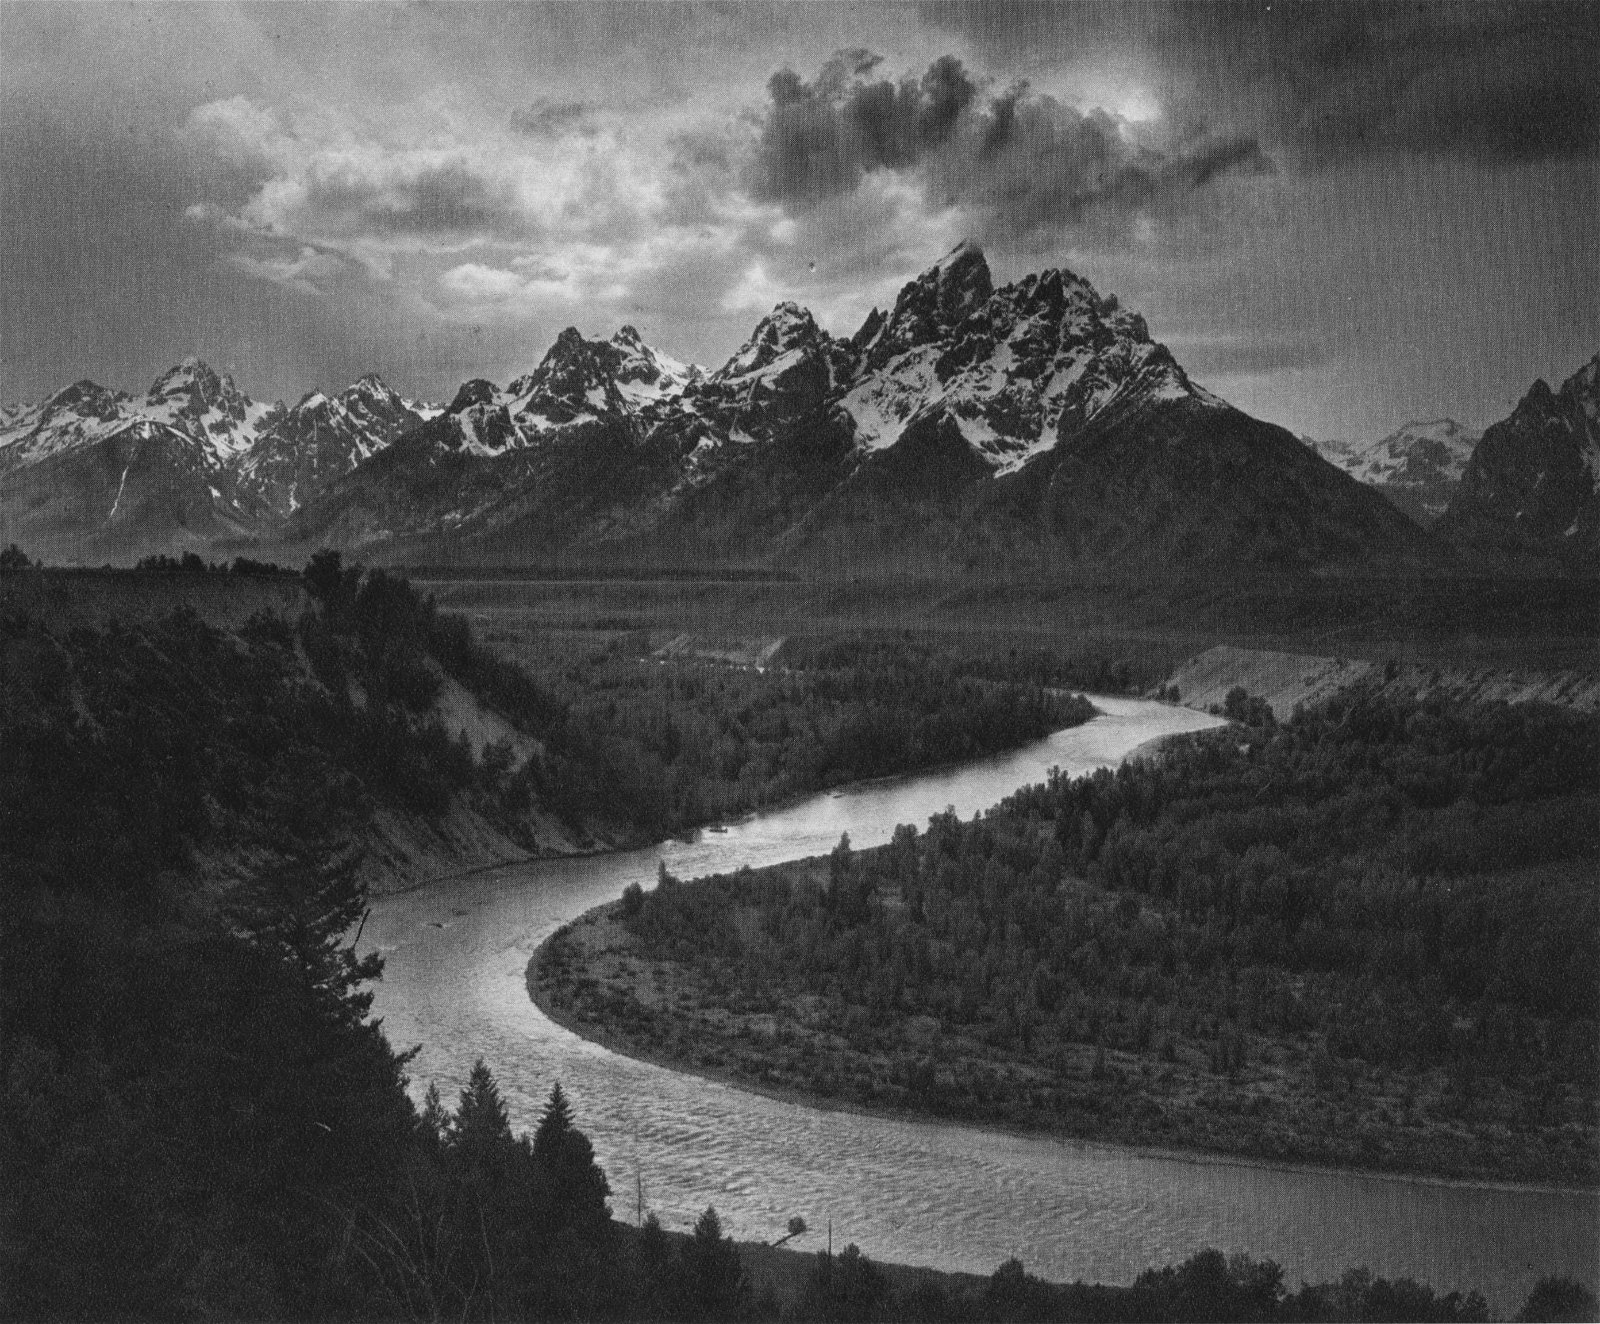 ANSEL ADAMS - The Tetons and the Snake River, Grand